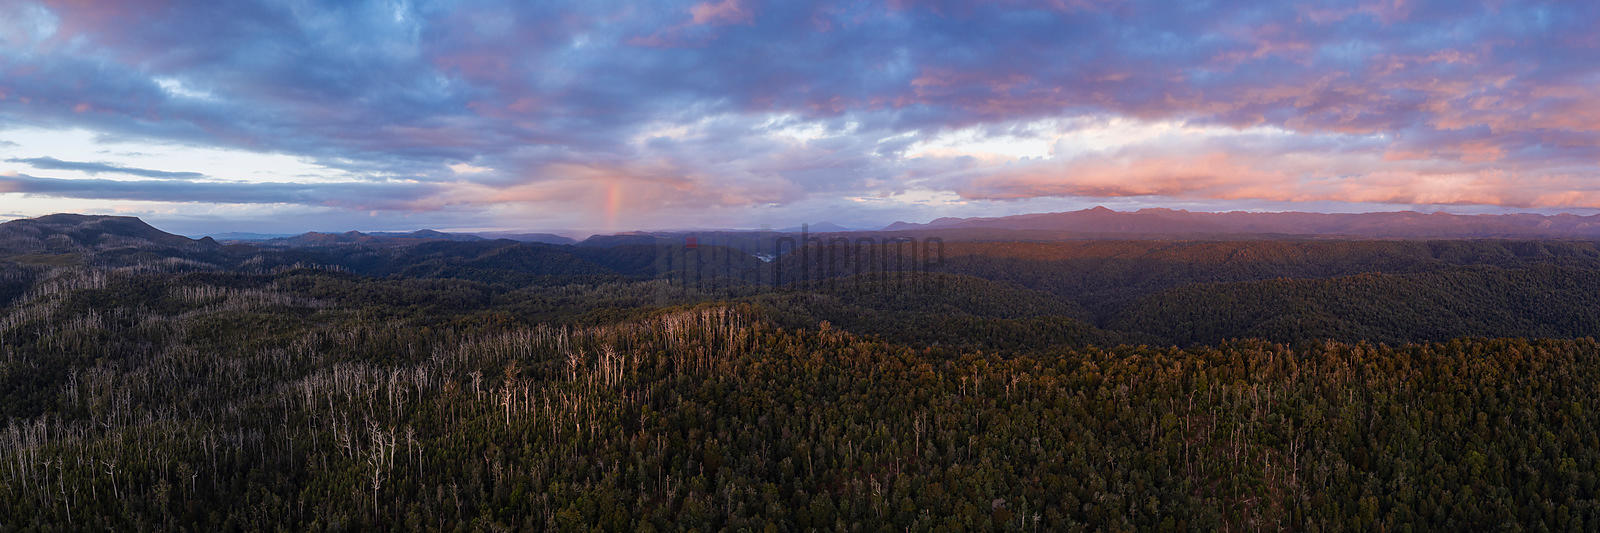 Tarkine Landscape with Meredith Range in the Background at Sunset